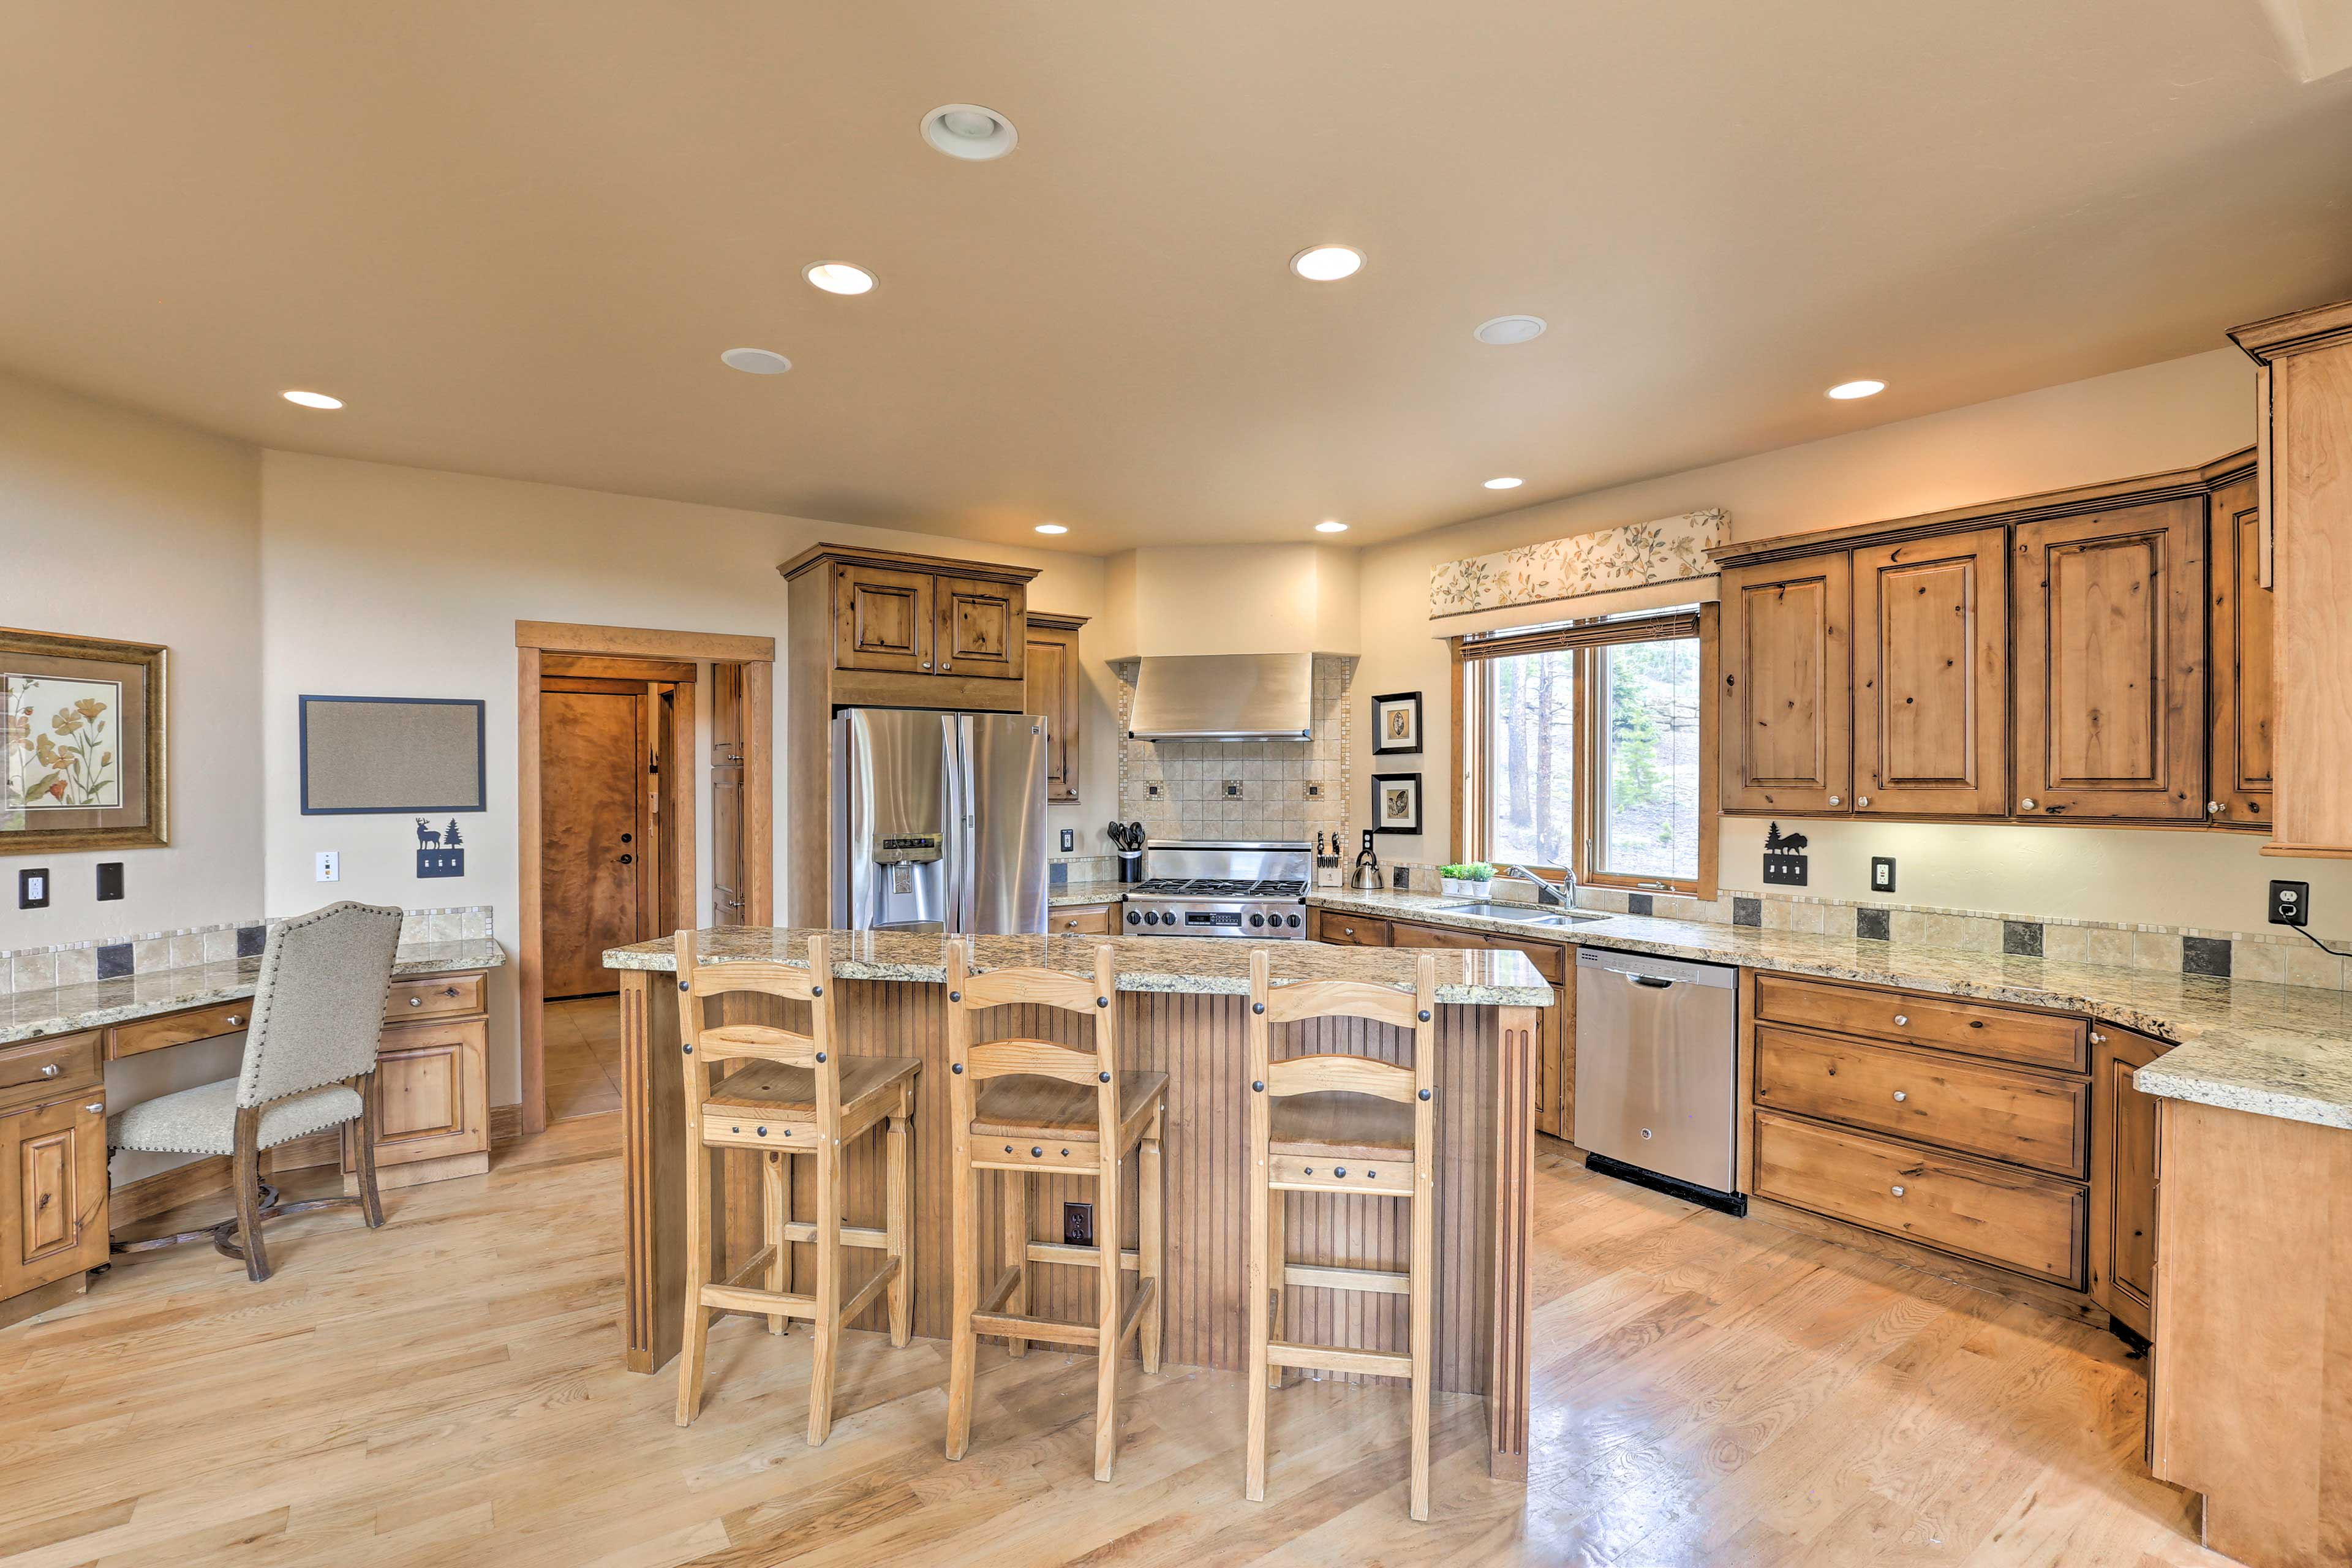 Chefs in the group will be delighted to cook in this gourmet kitchen!